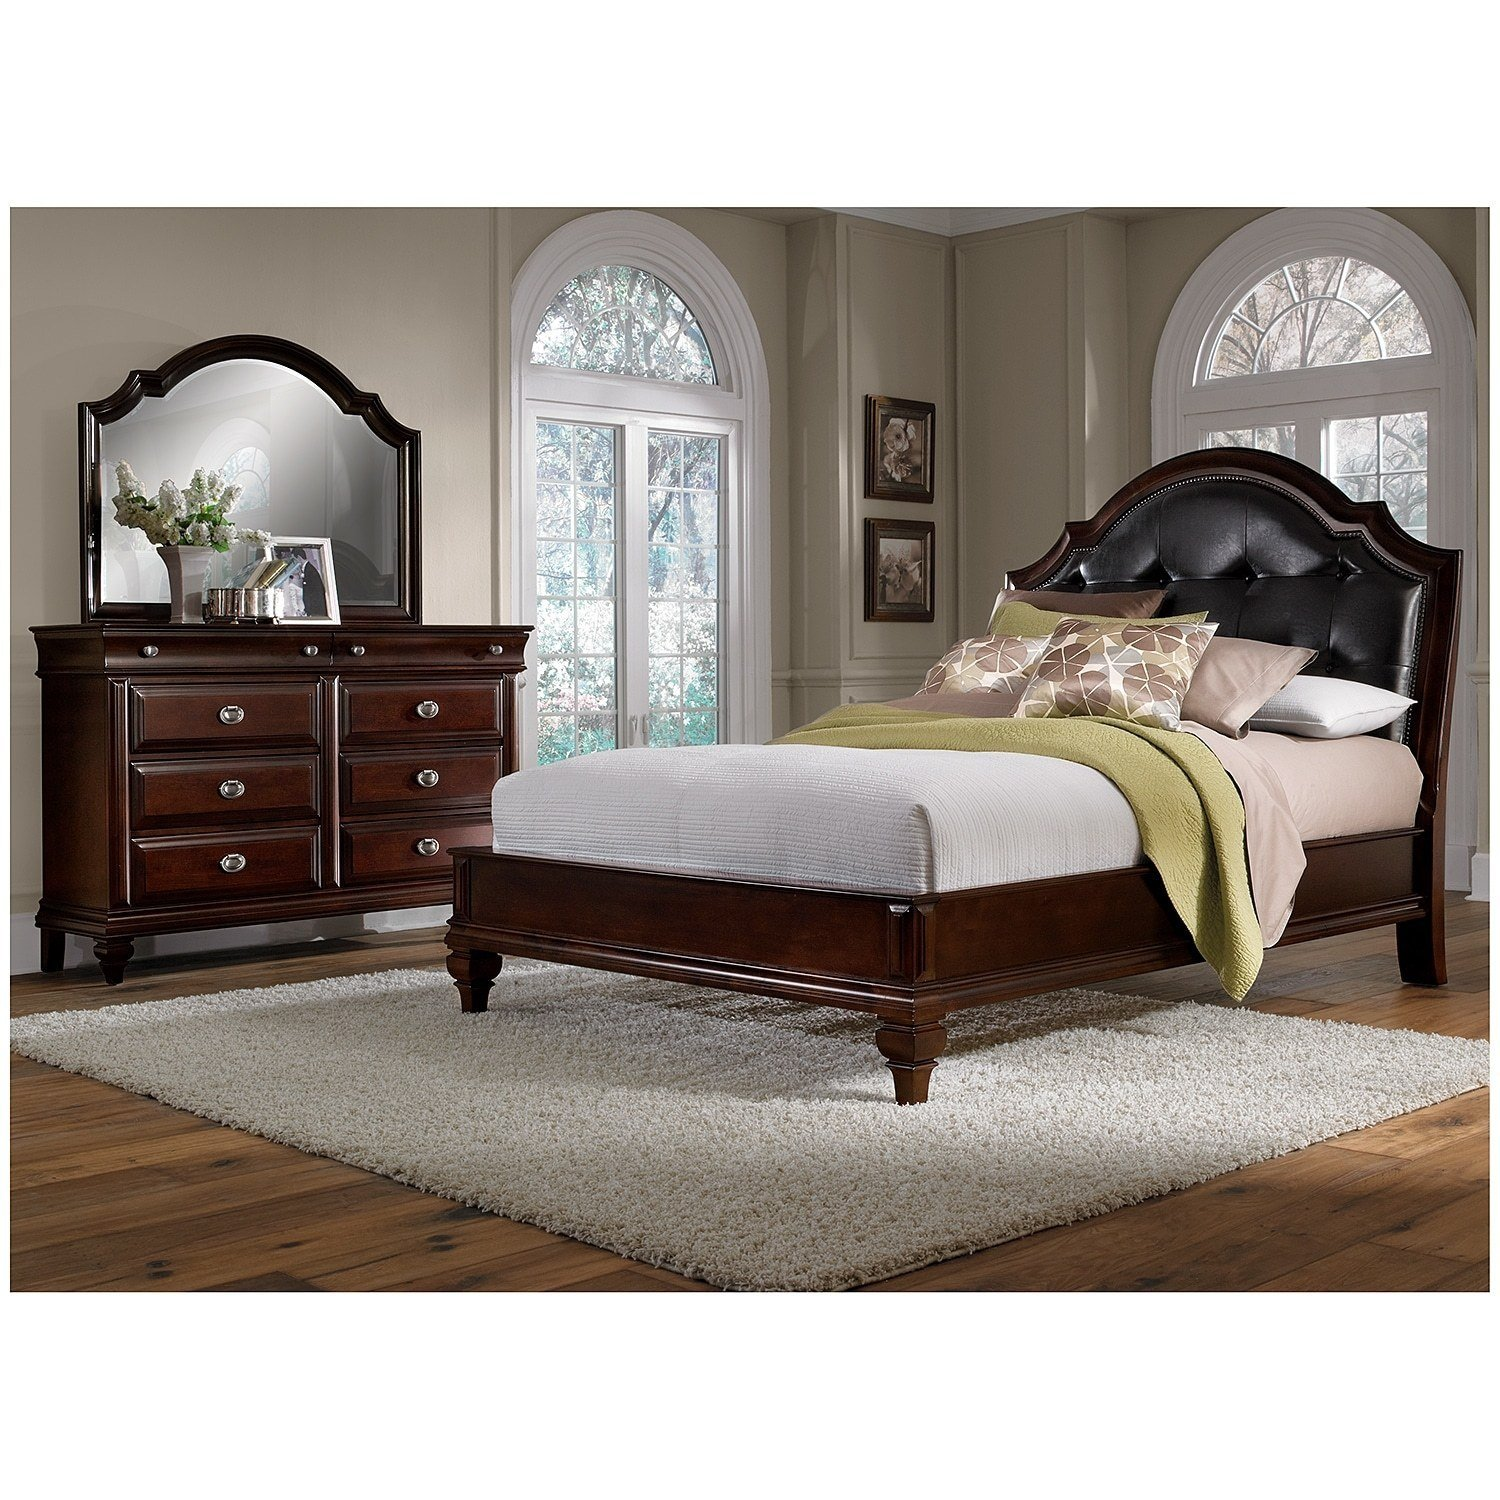 Best Shop 5 Piece Bedroom Sets American Signature Furniture With Pictures